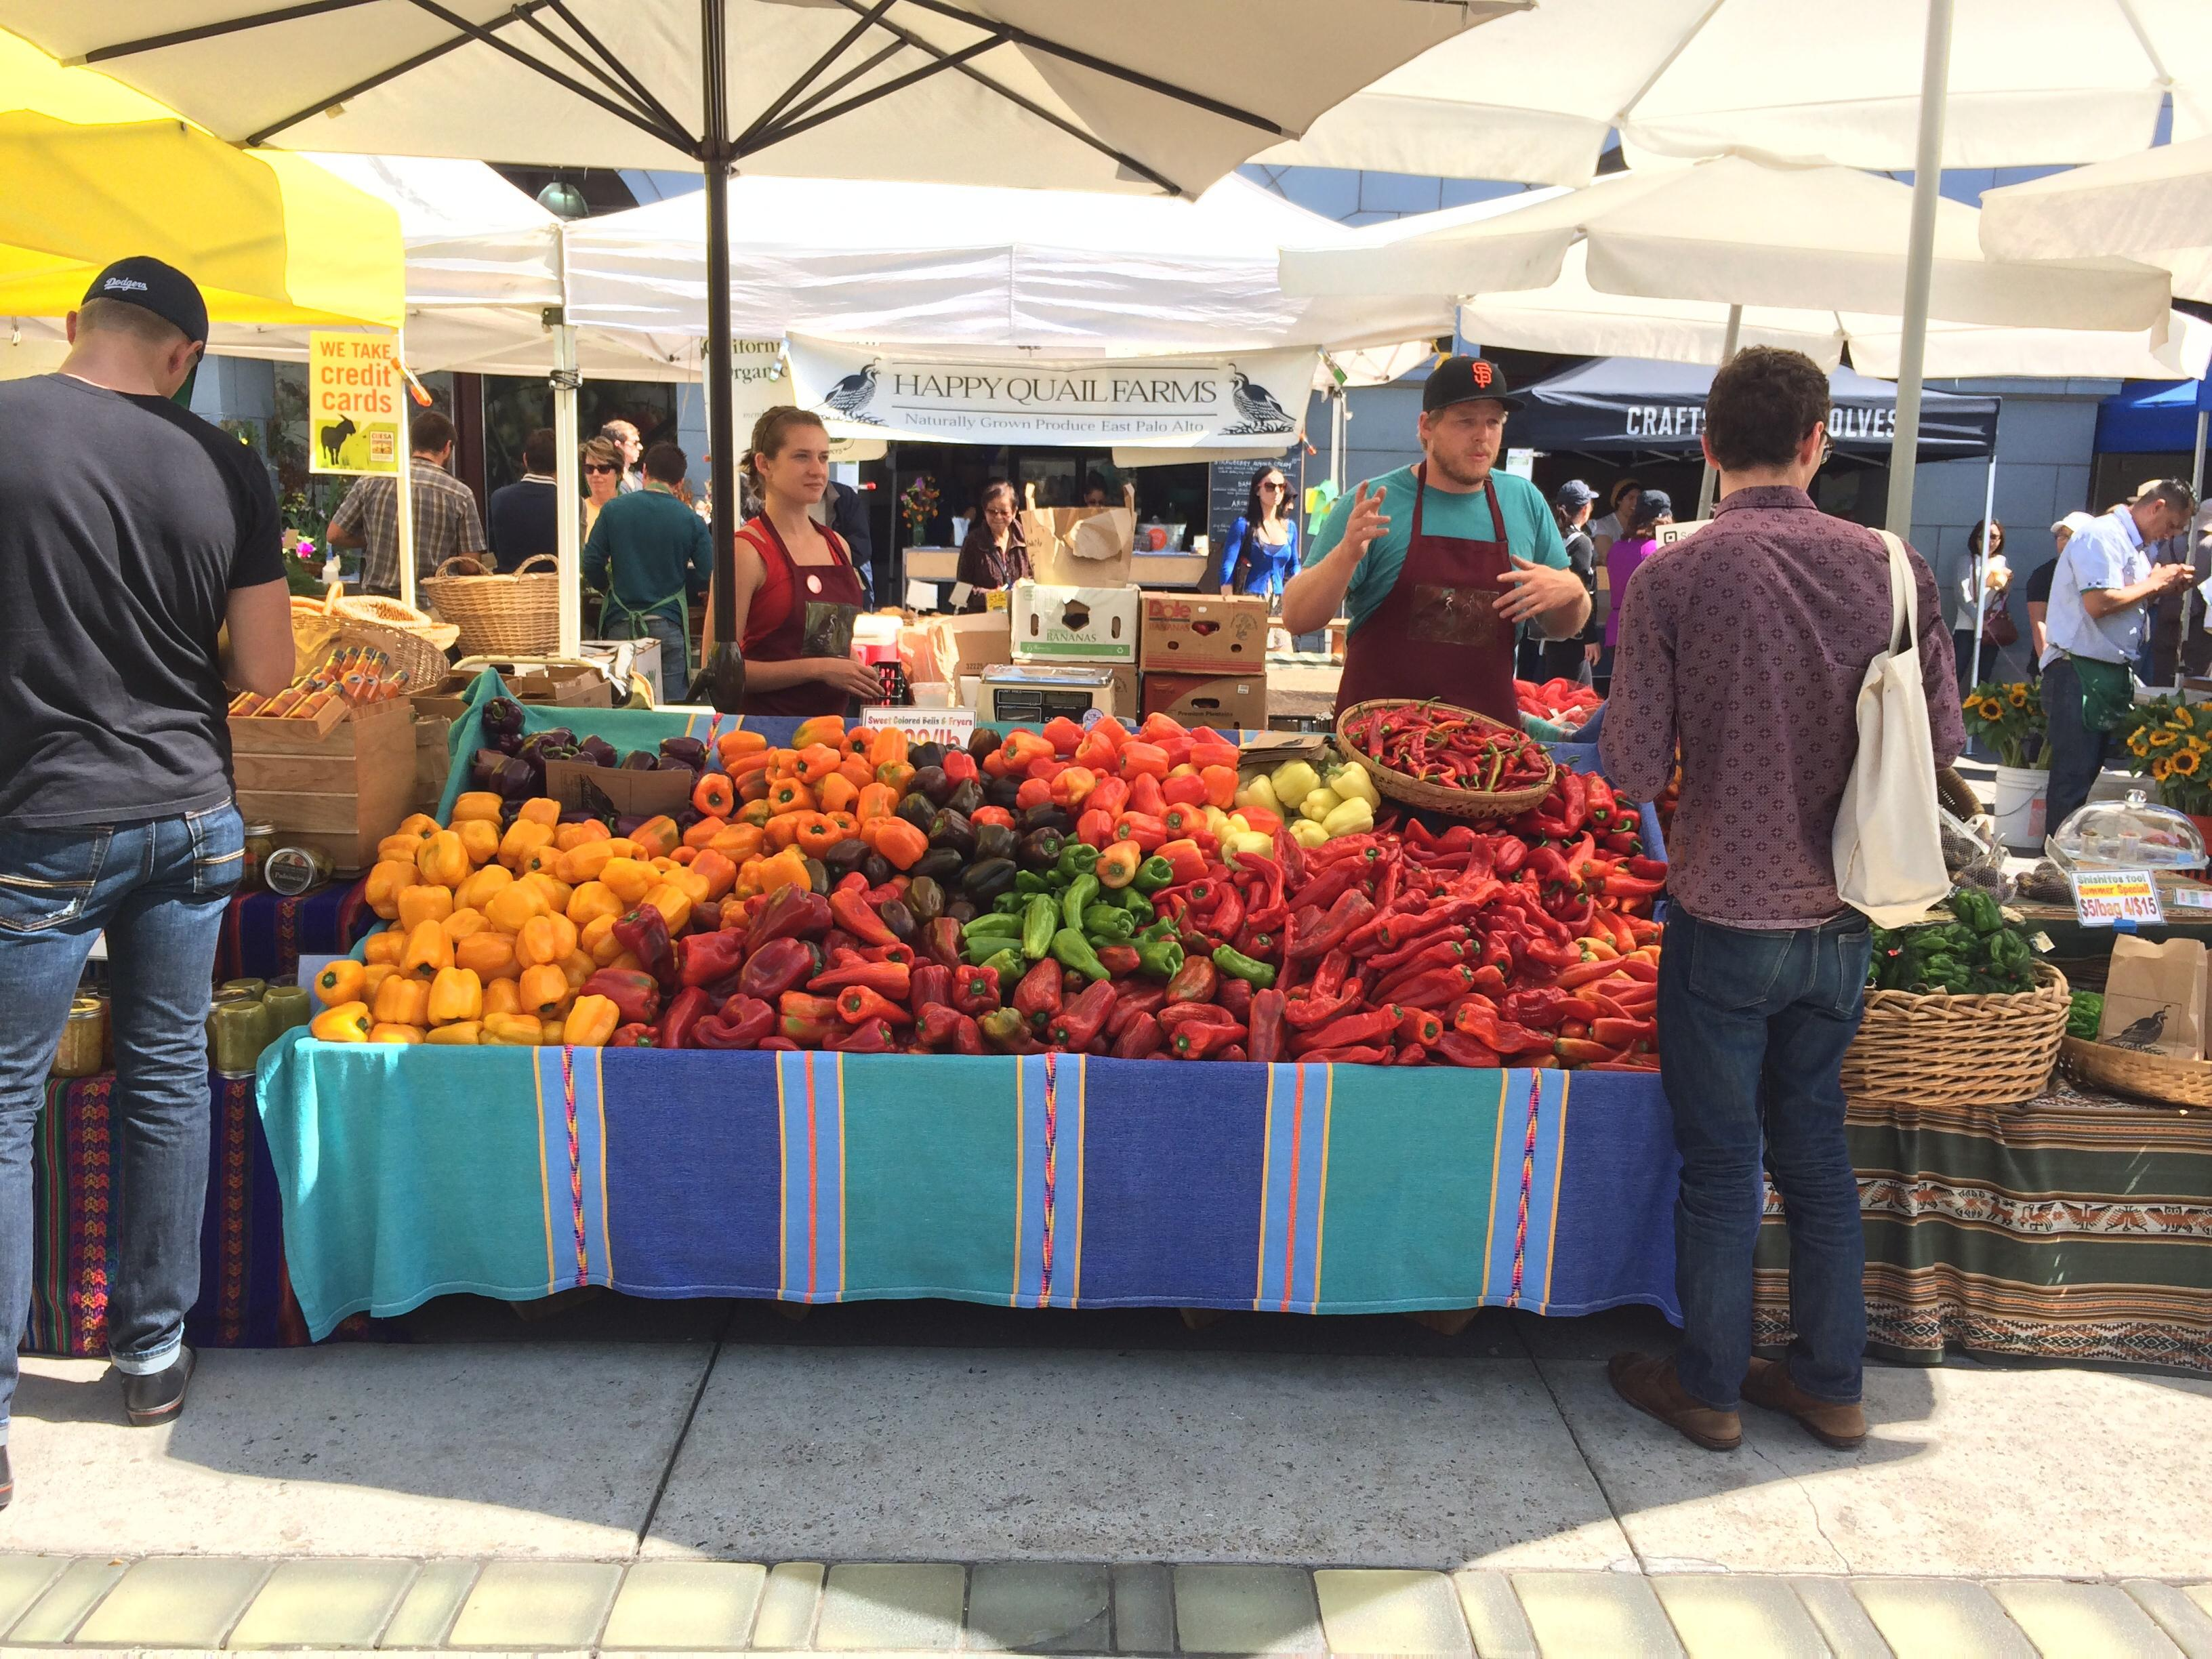 """supermarket or farmers market essay """"contrary to many consumers' perception, farmers market prices are competitive with regular supermarket prices,"""" fake said """"some prices are slightly higher, some slightly lower, but they are in the same range."""